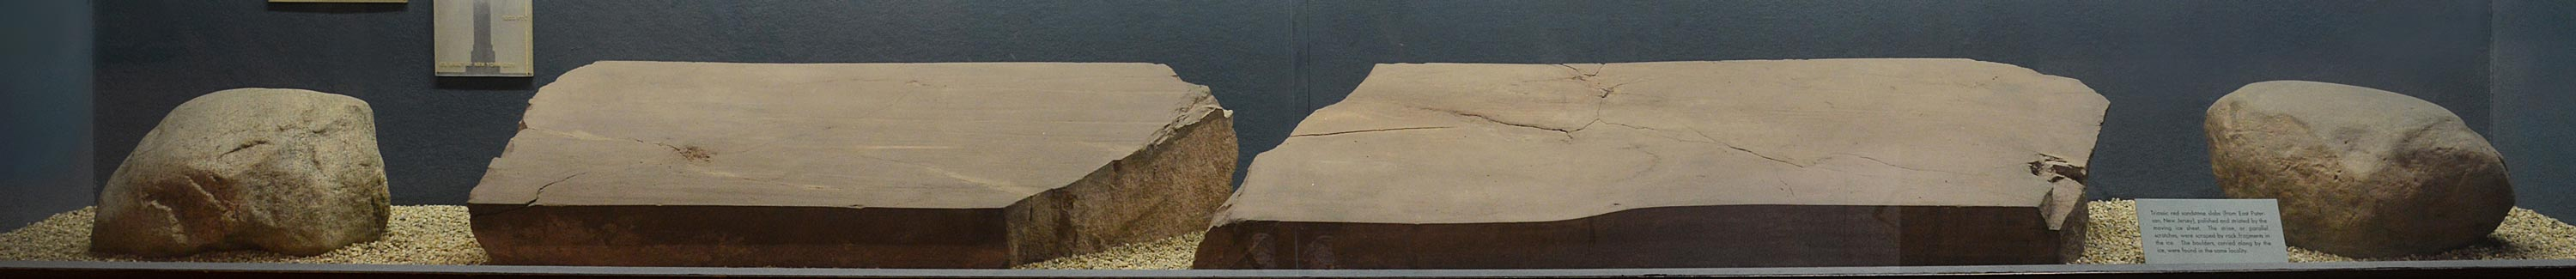 Bottom of museum case showing four pieces of red sandstone slabs.